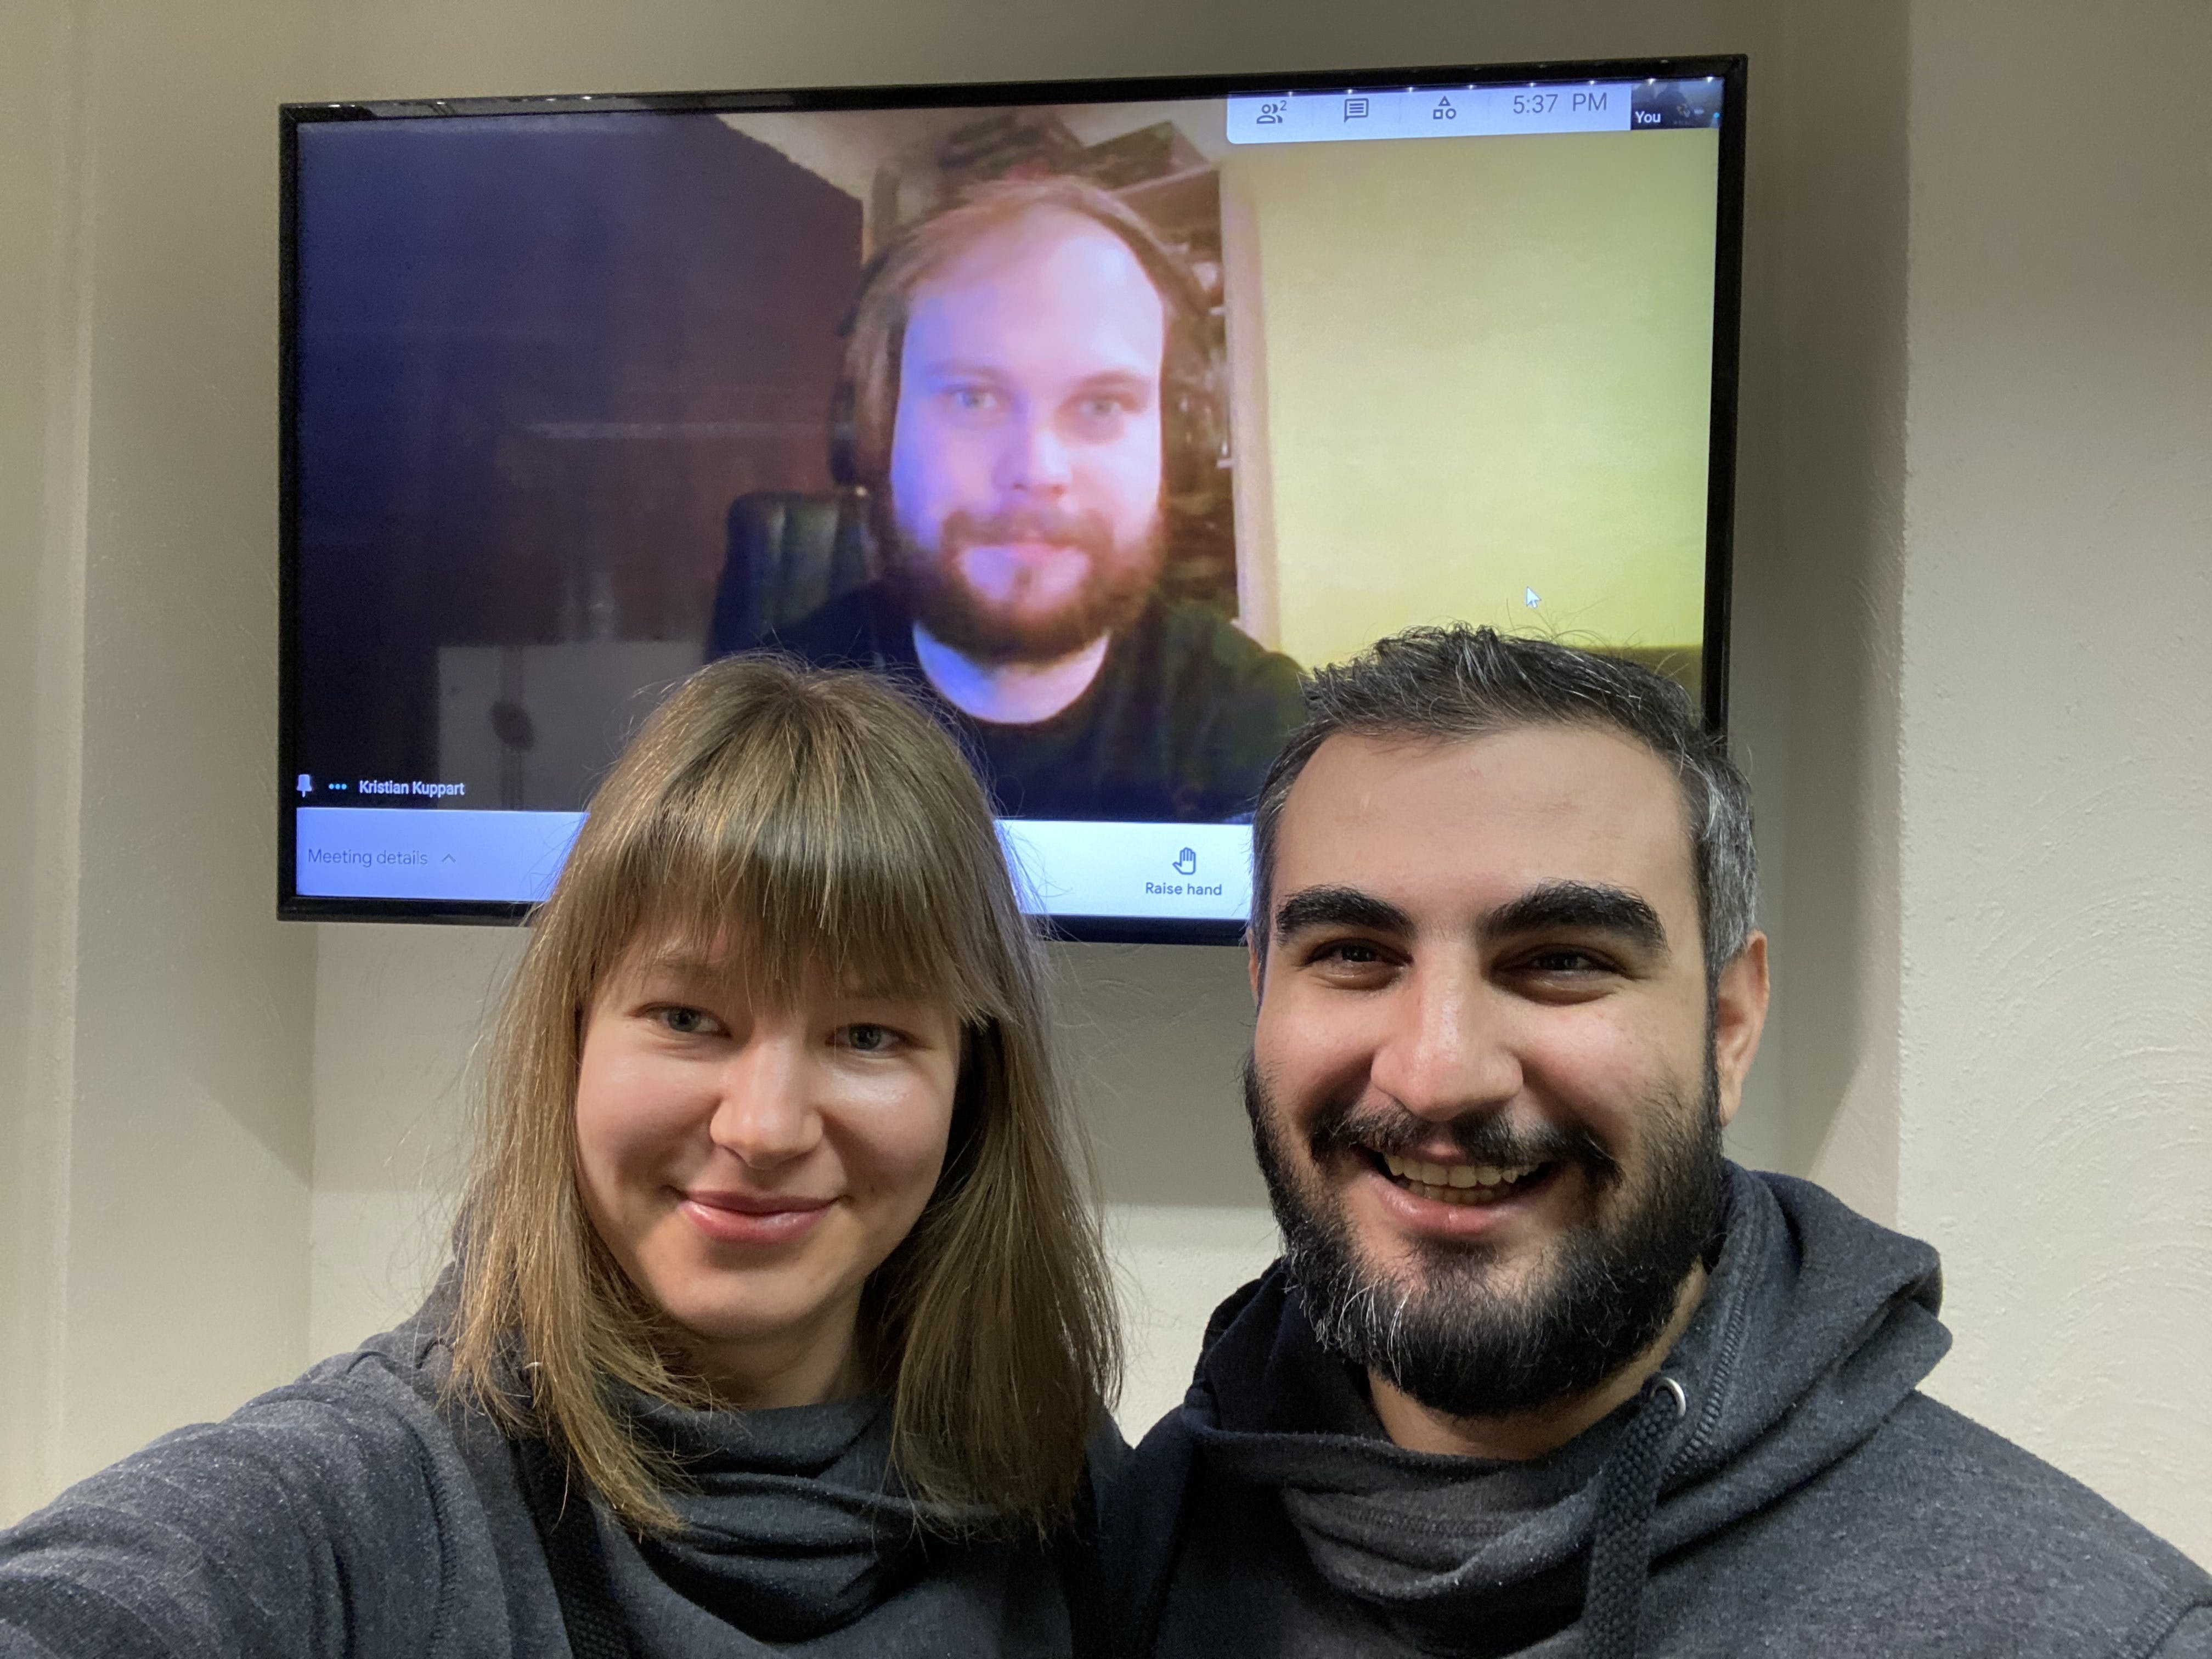 Ana, Ibrahim & Kristjan, who worked together to start creating Face Match